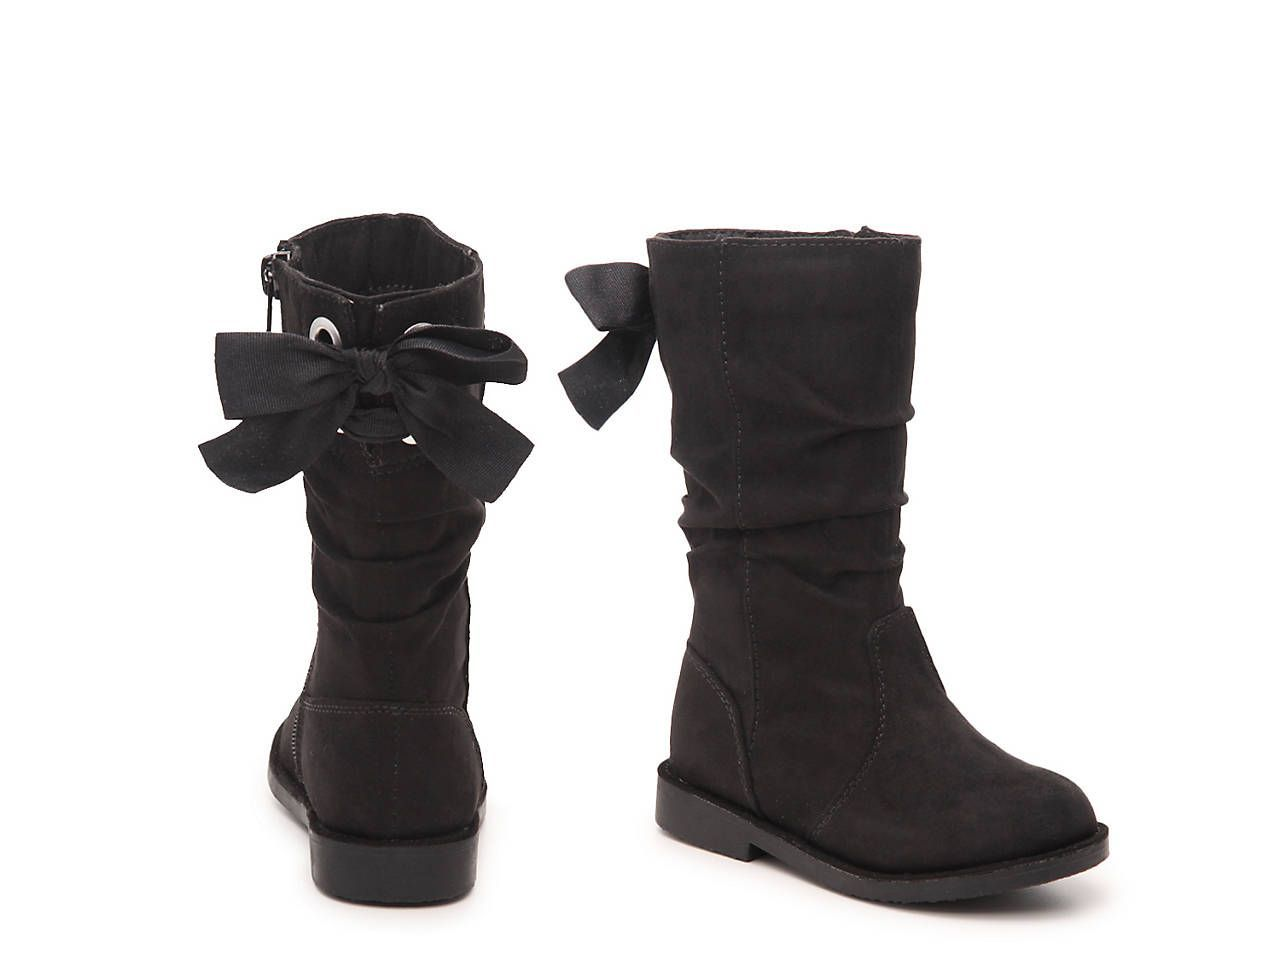 Sale Includes the Fall Boots, Flats